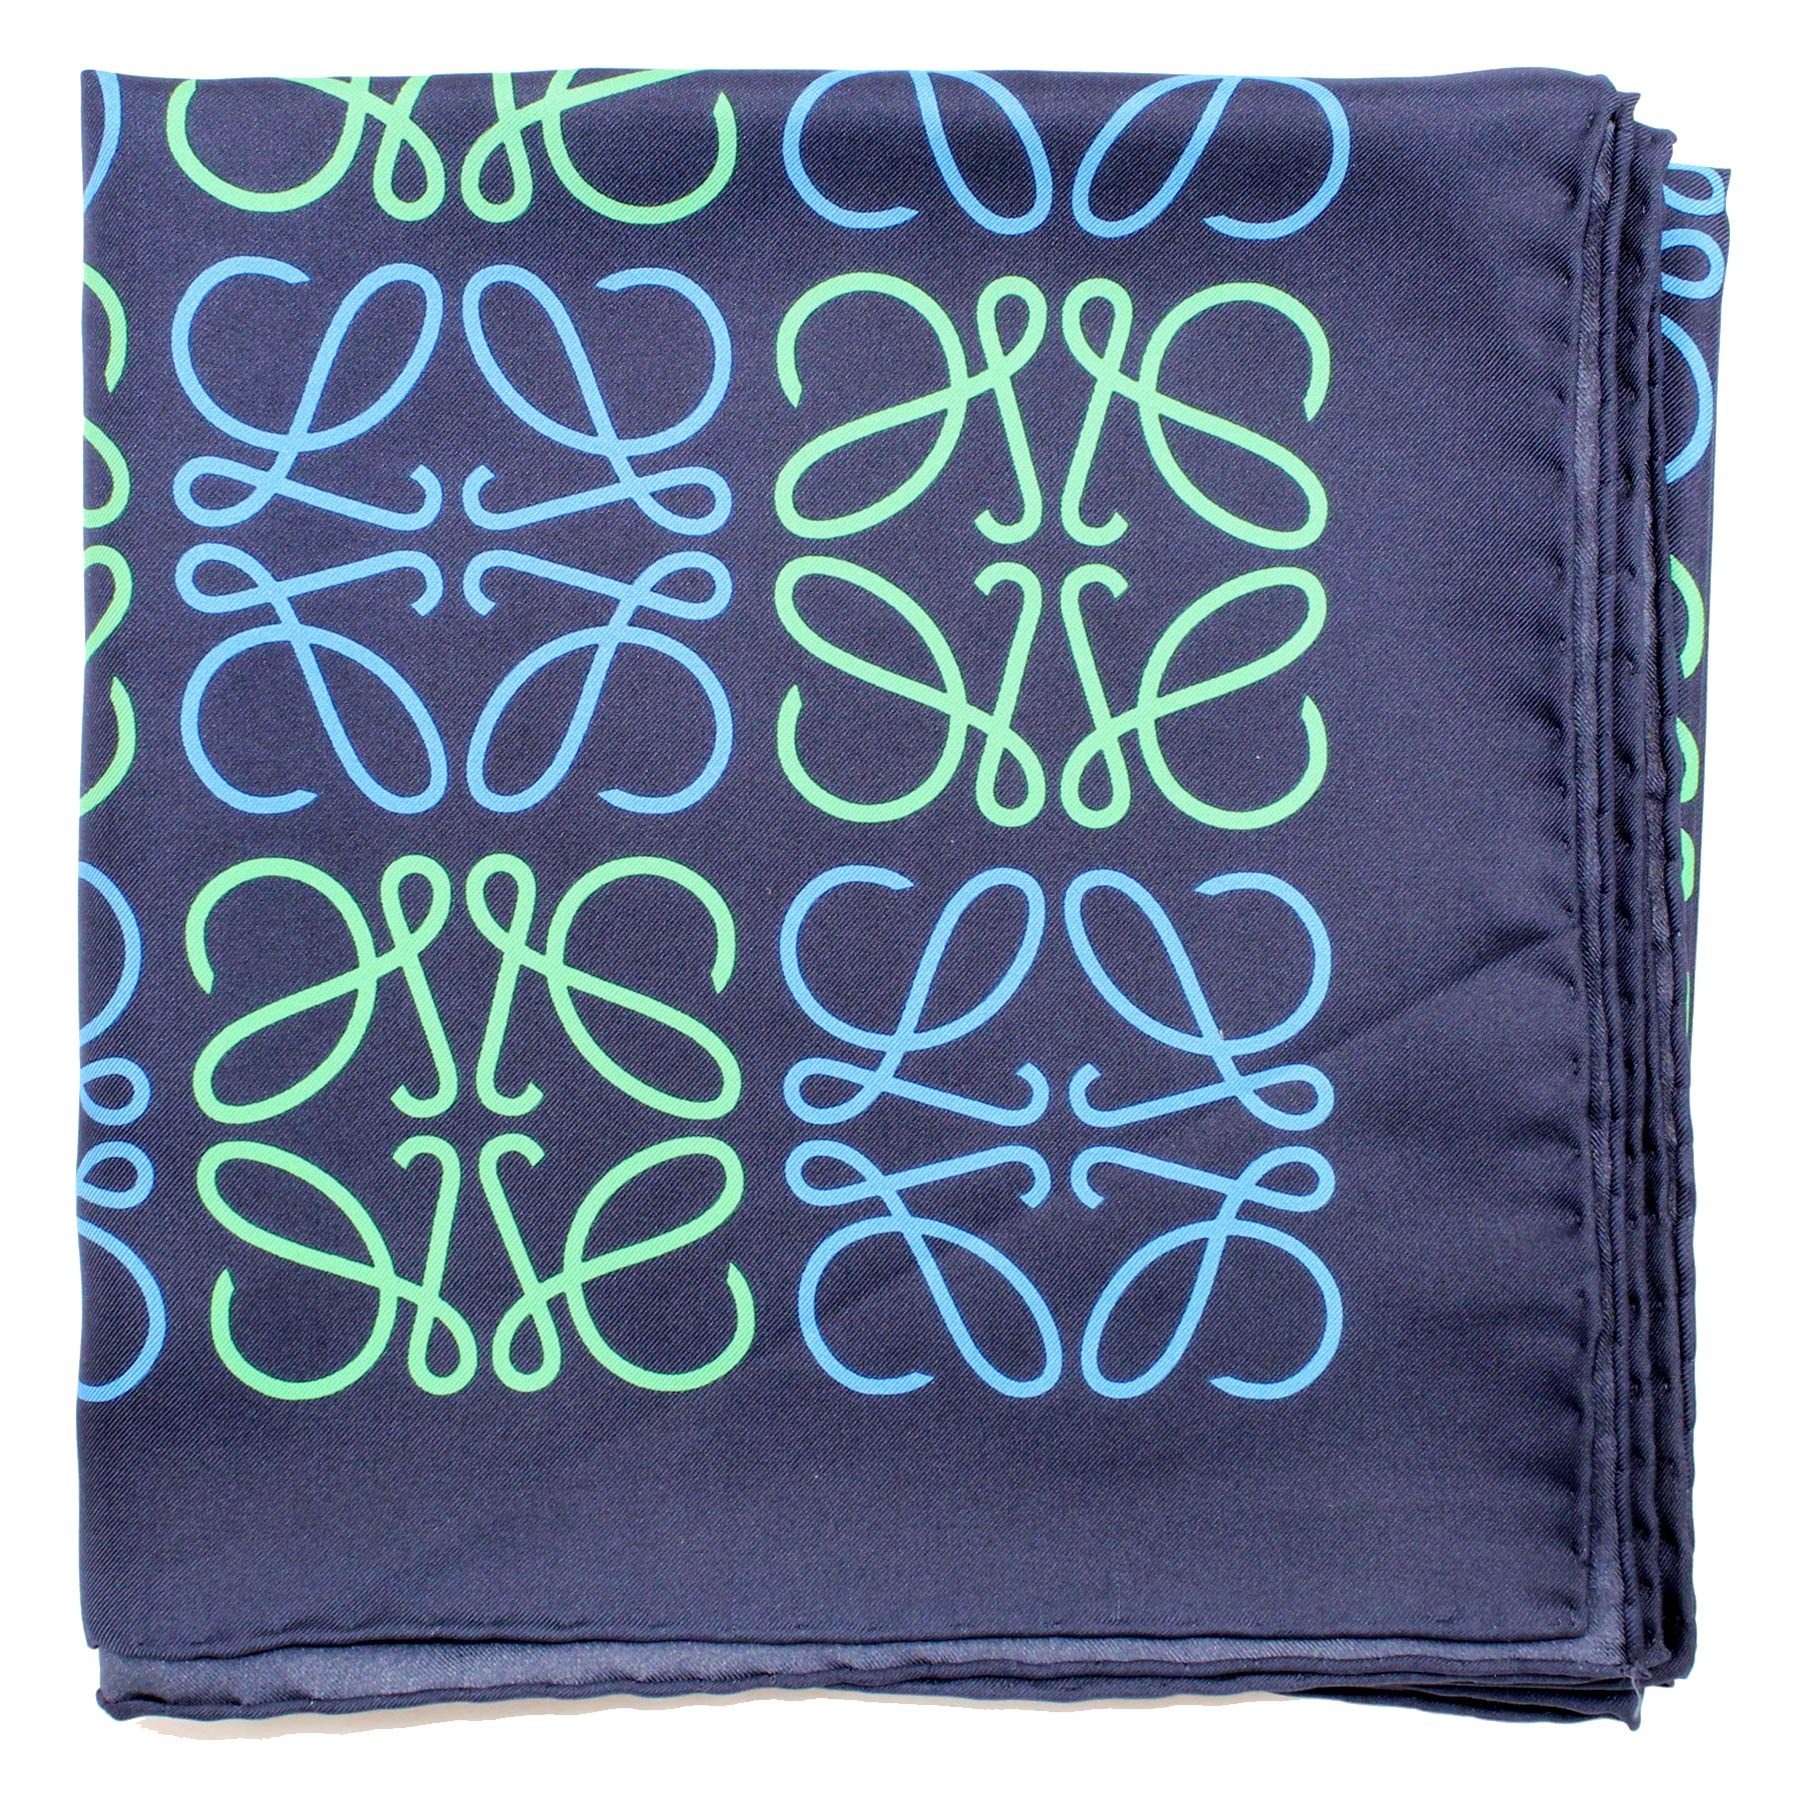 Loewe Silk Scarf Navy Green Anagram Design